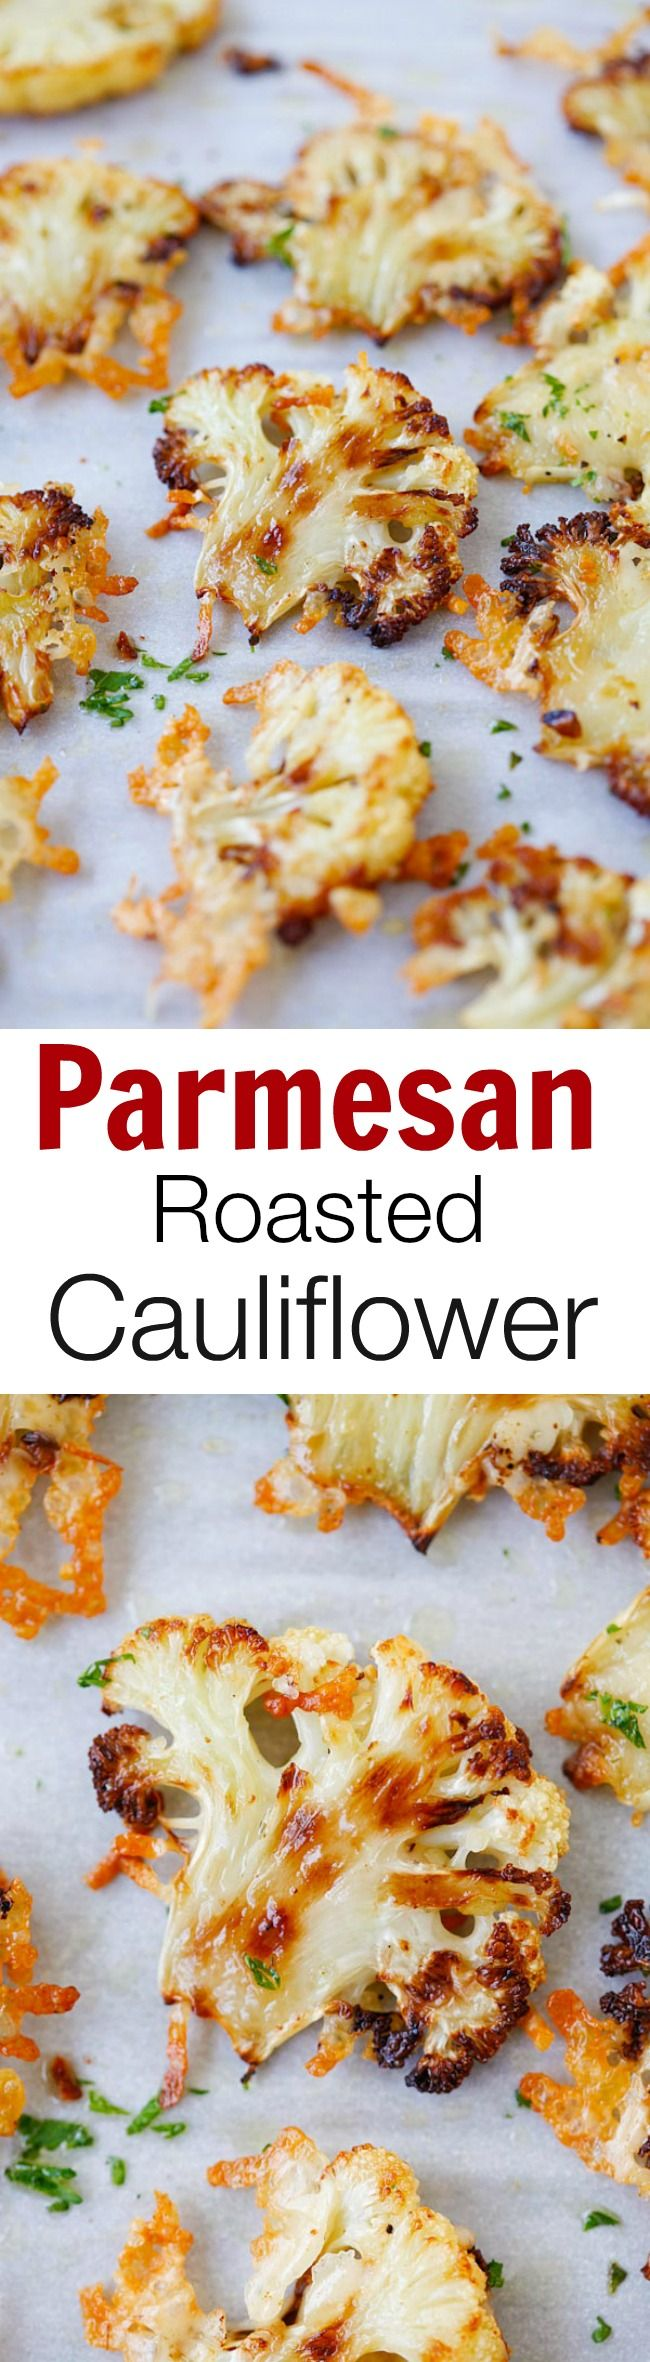 Parmesan Roasted Cauliflower – delicious cauliflower roasted with butter, olive oil and Parmesan